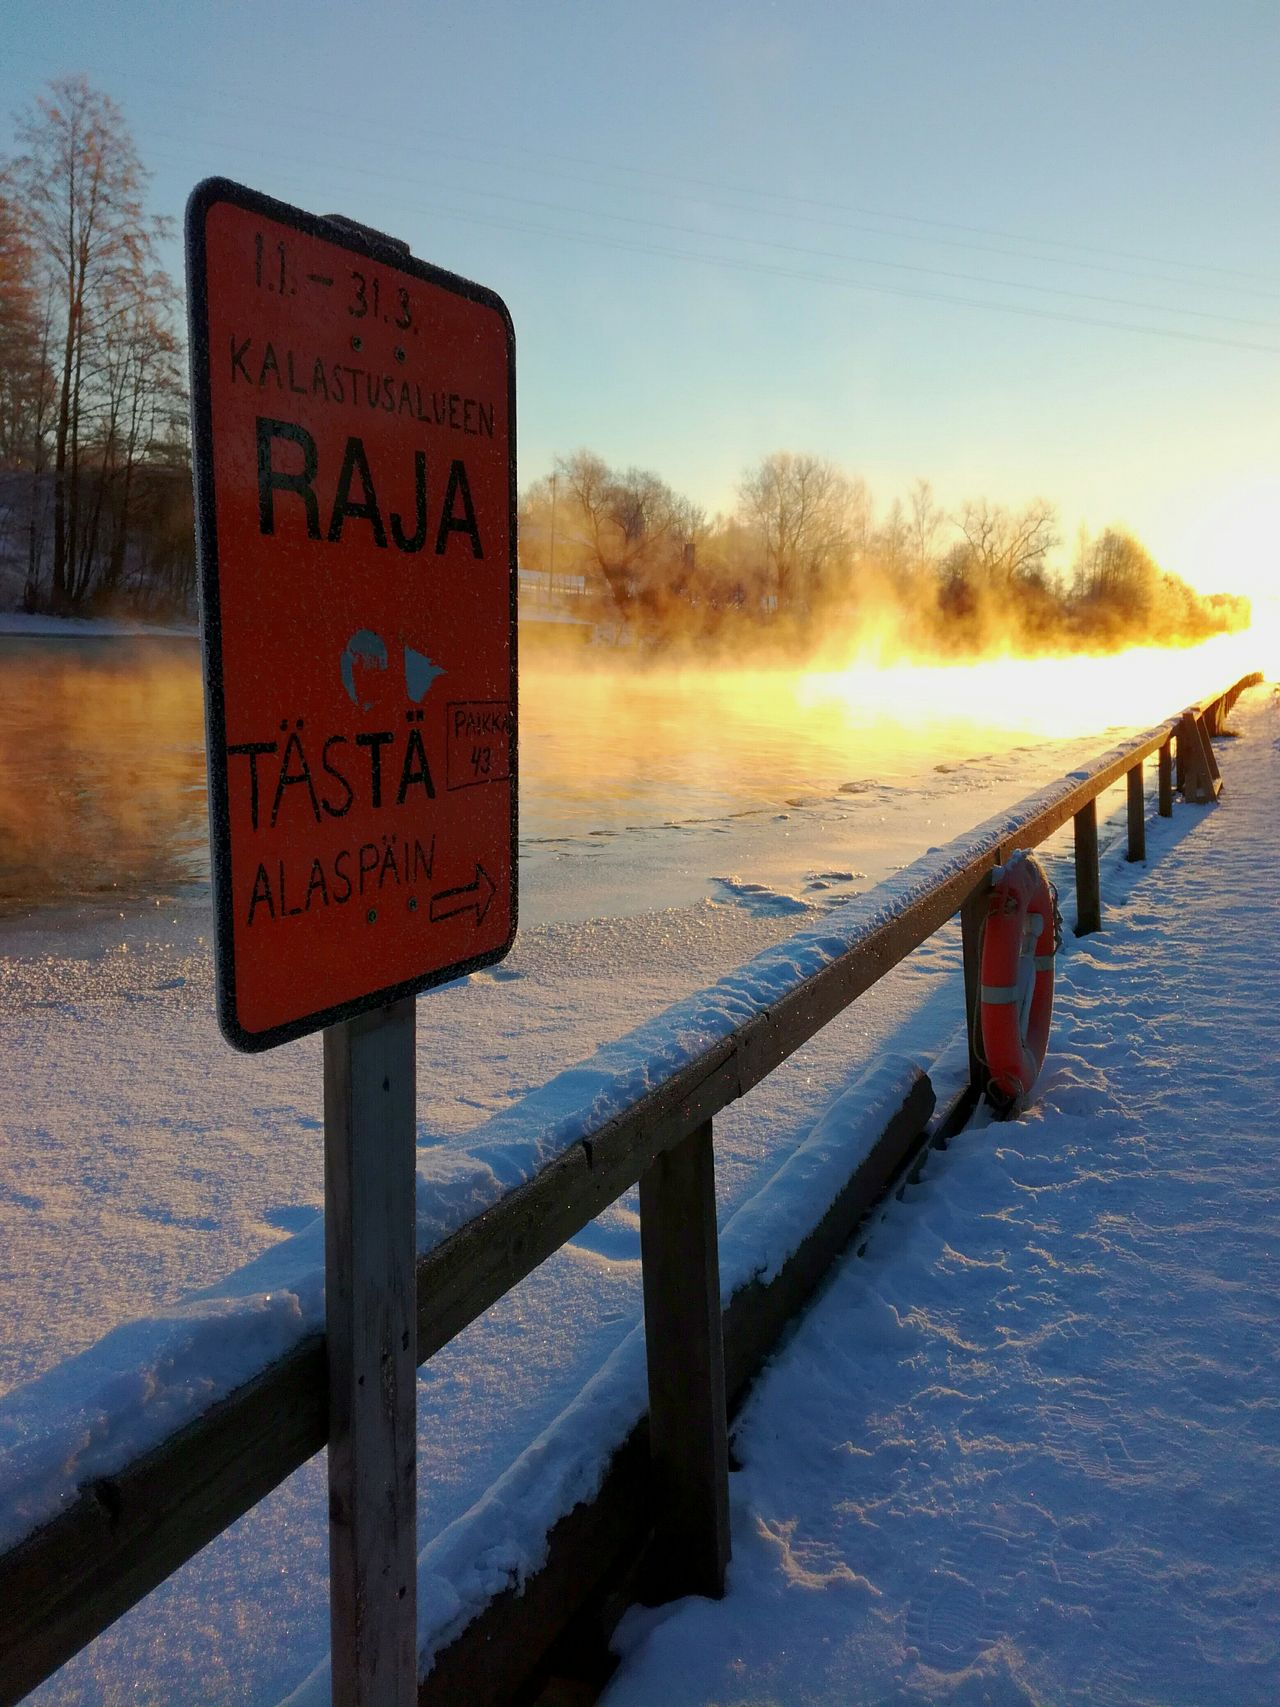 Cold Temperature Sunrise Sky Nature Winter Beauty In Nature Water No People Outdoors Signboard Life Saver Pier Wintertime Morning Misty Morning Frozen River Winter Sun Ice River Kotka, Finland Beauty In Nature Sun Light And Shadow Tranquil Scene Instructions